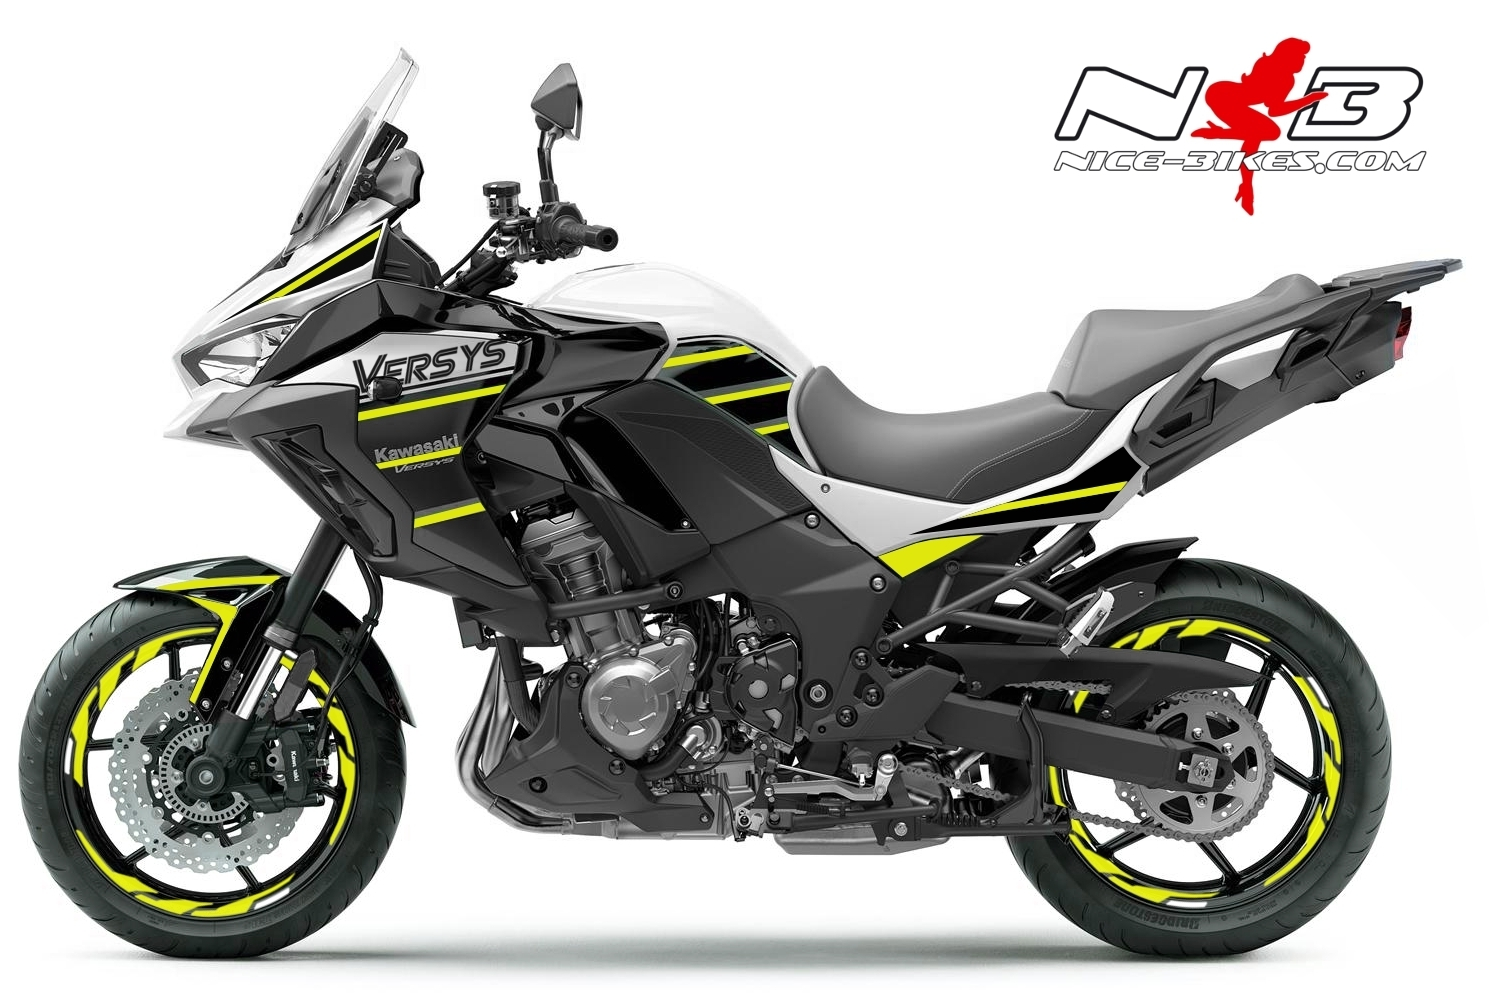 Foliendesign Kawasaki Versys 1000 Bj. 2020 Hornet Yellow